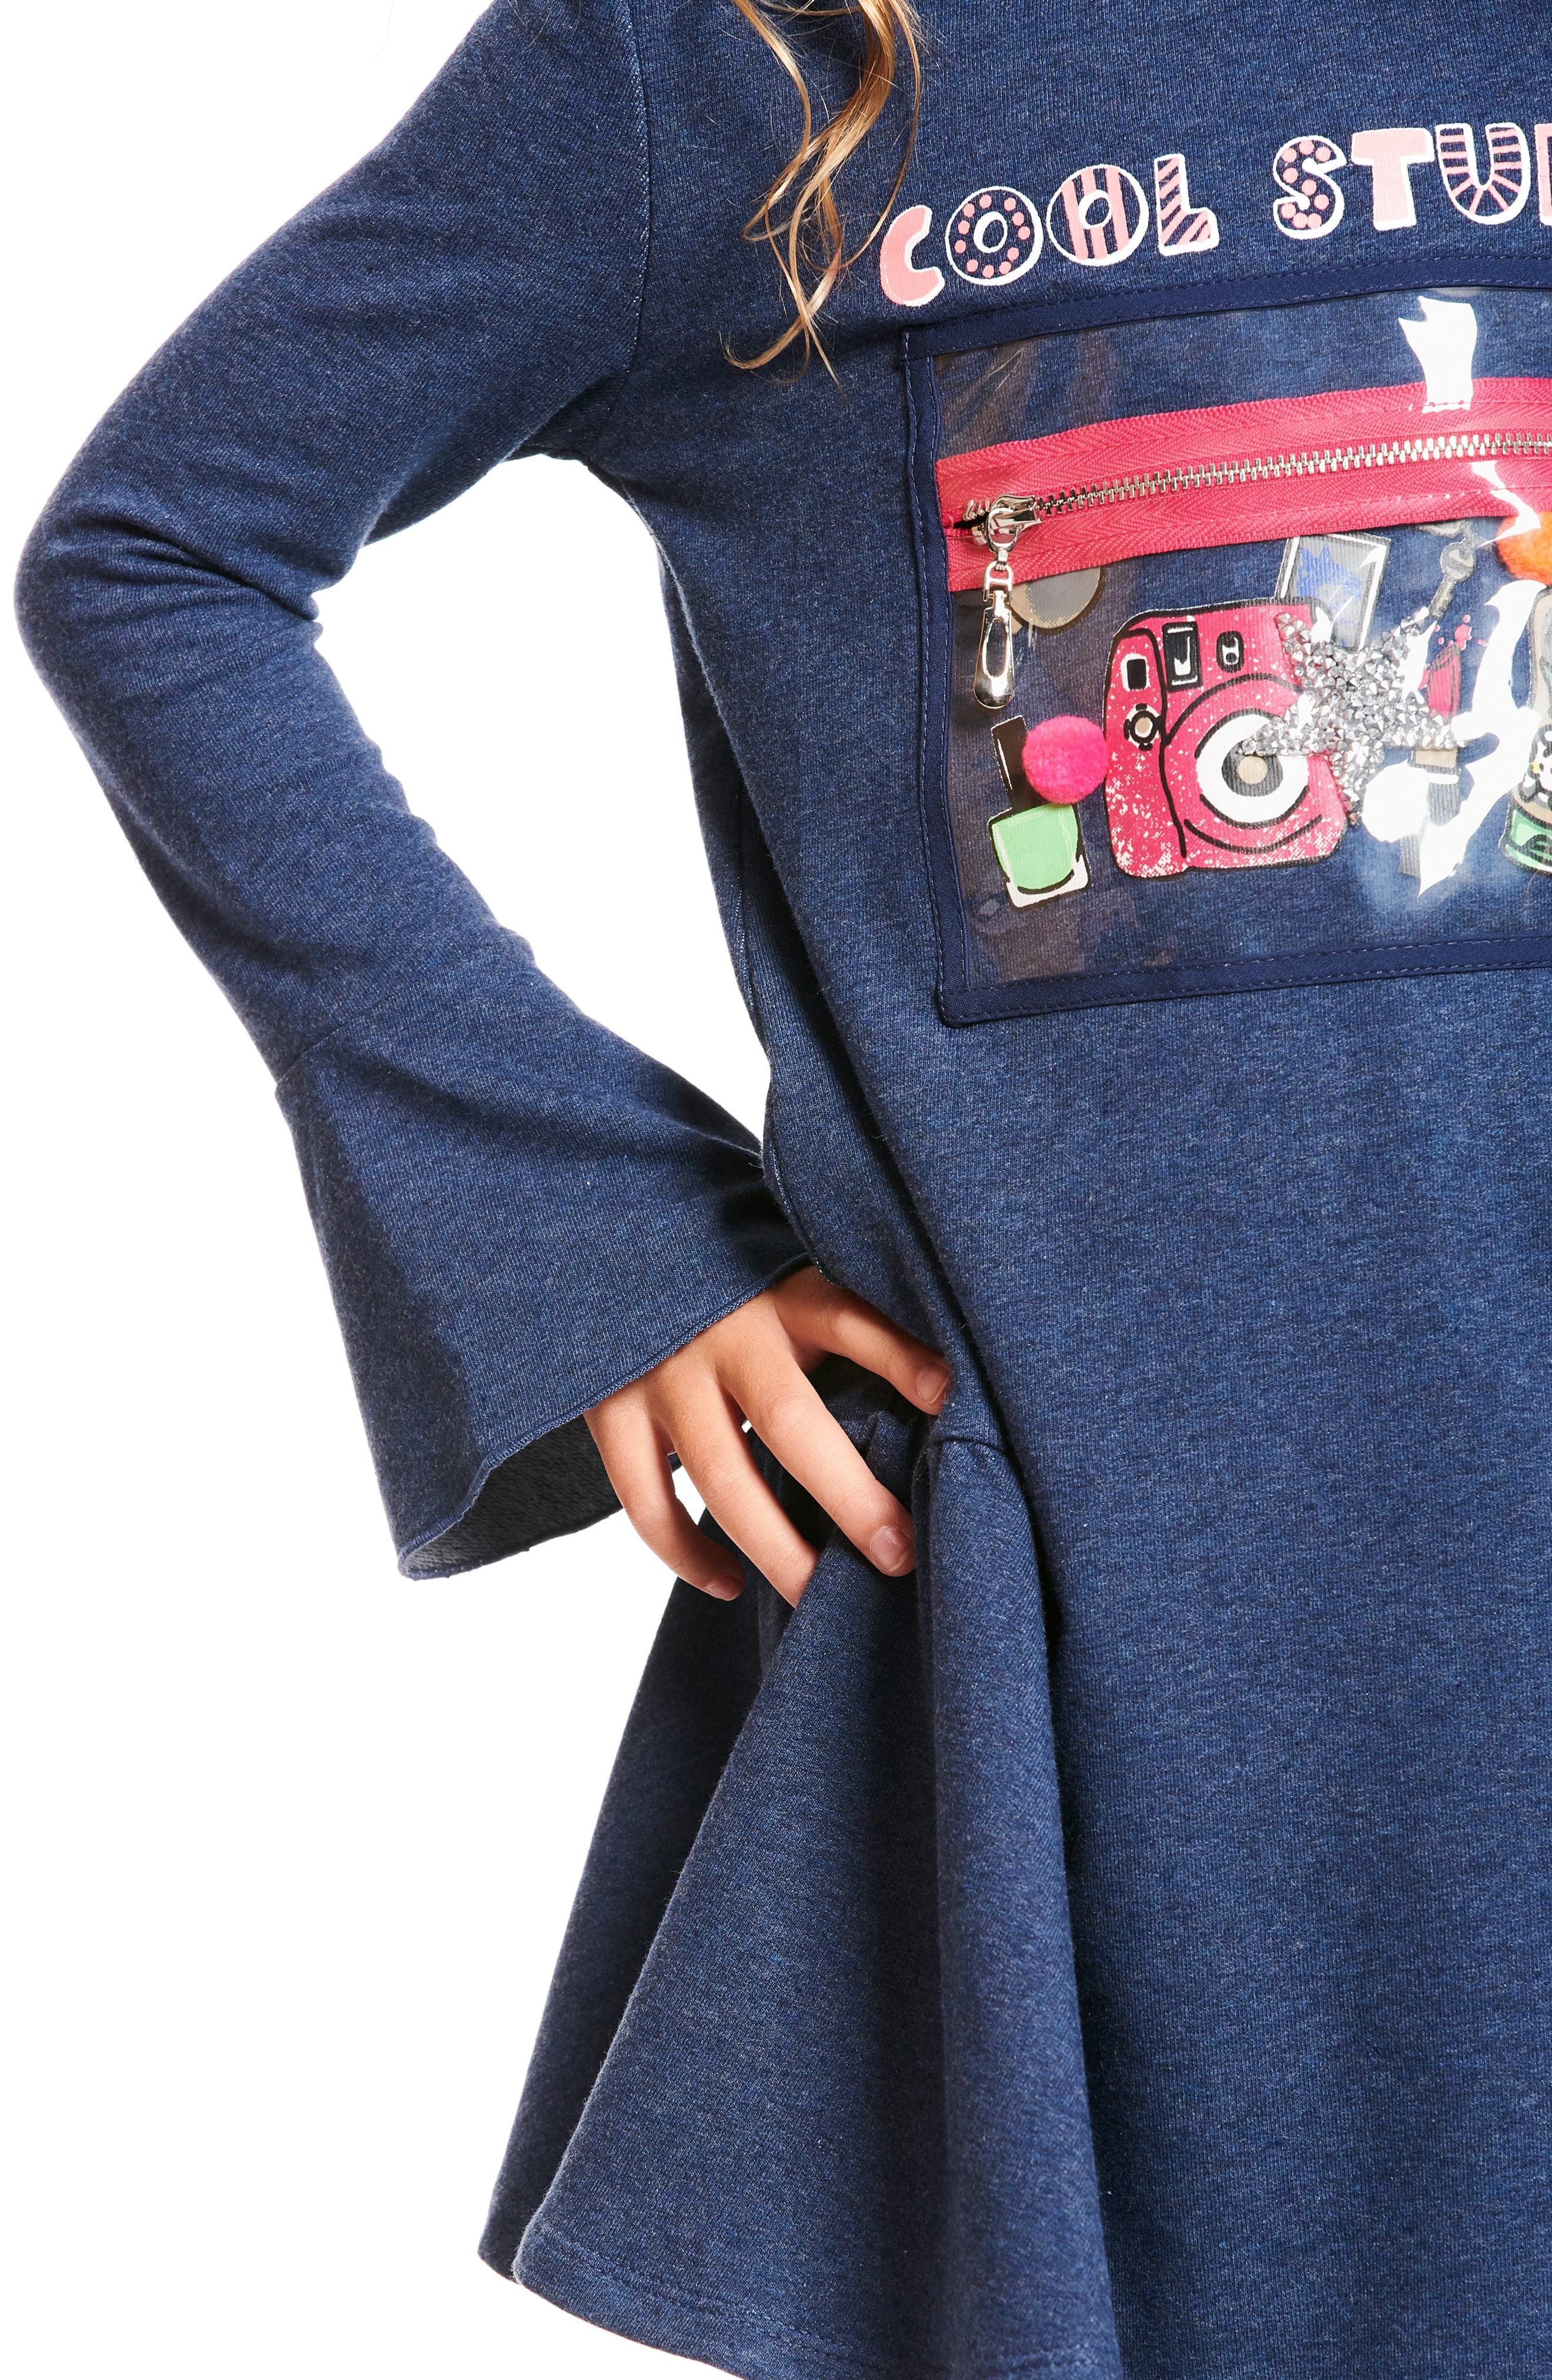 Cool Stuff Knit Dress with Zip Pouch,                             Alternate thumbnail 5, color,                             NAVY